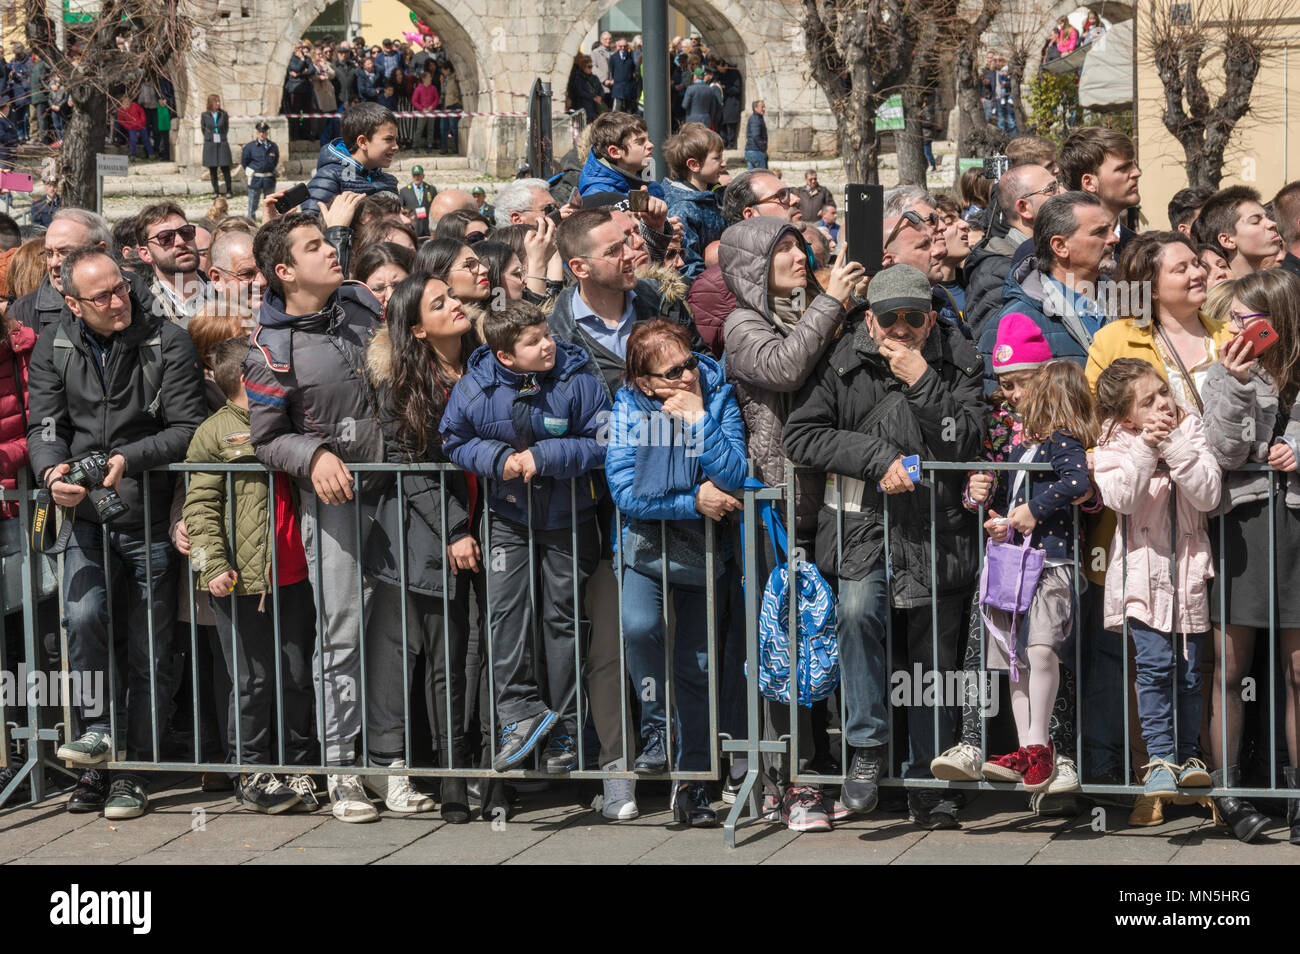 Onlookers at Madonna che Scappa celebration on Easter Sunday at Piazza Garibaldi in Sulmona, Abruzzo, Italy - Stock Image